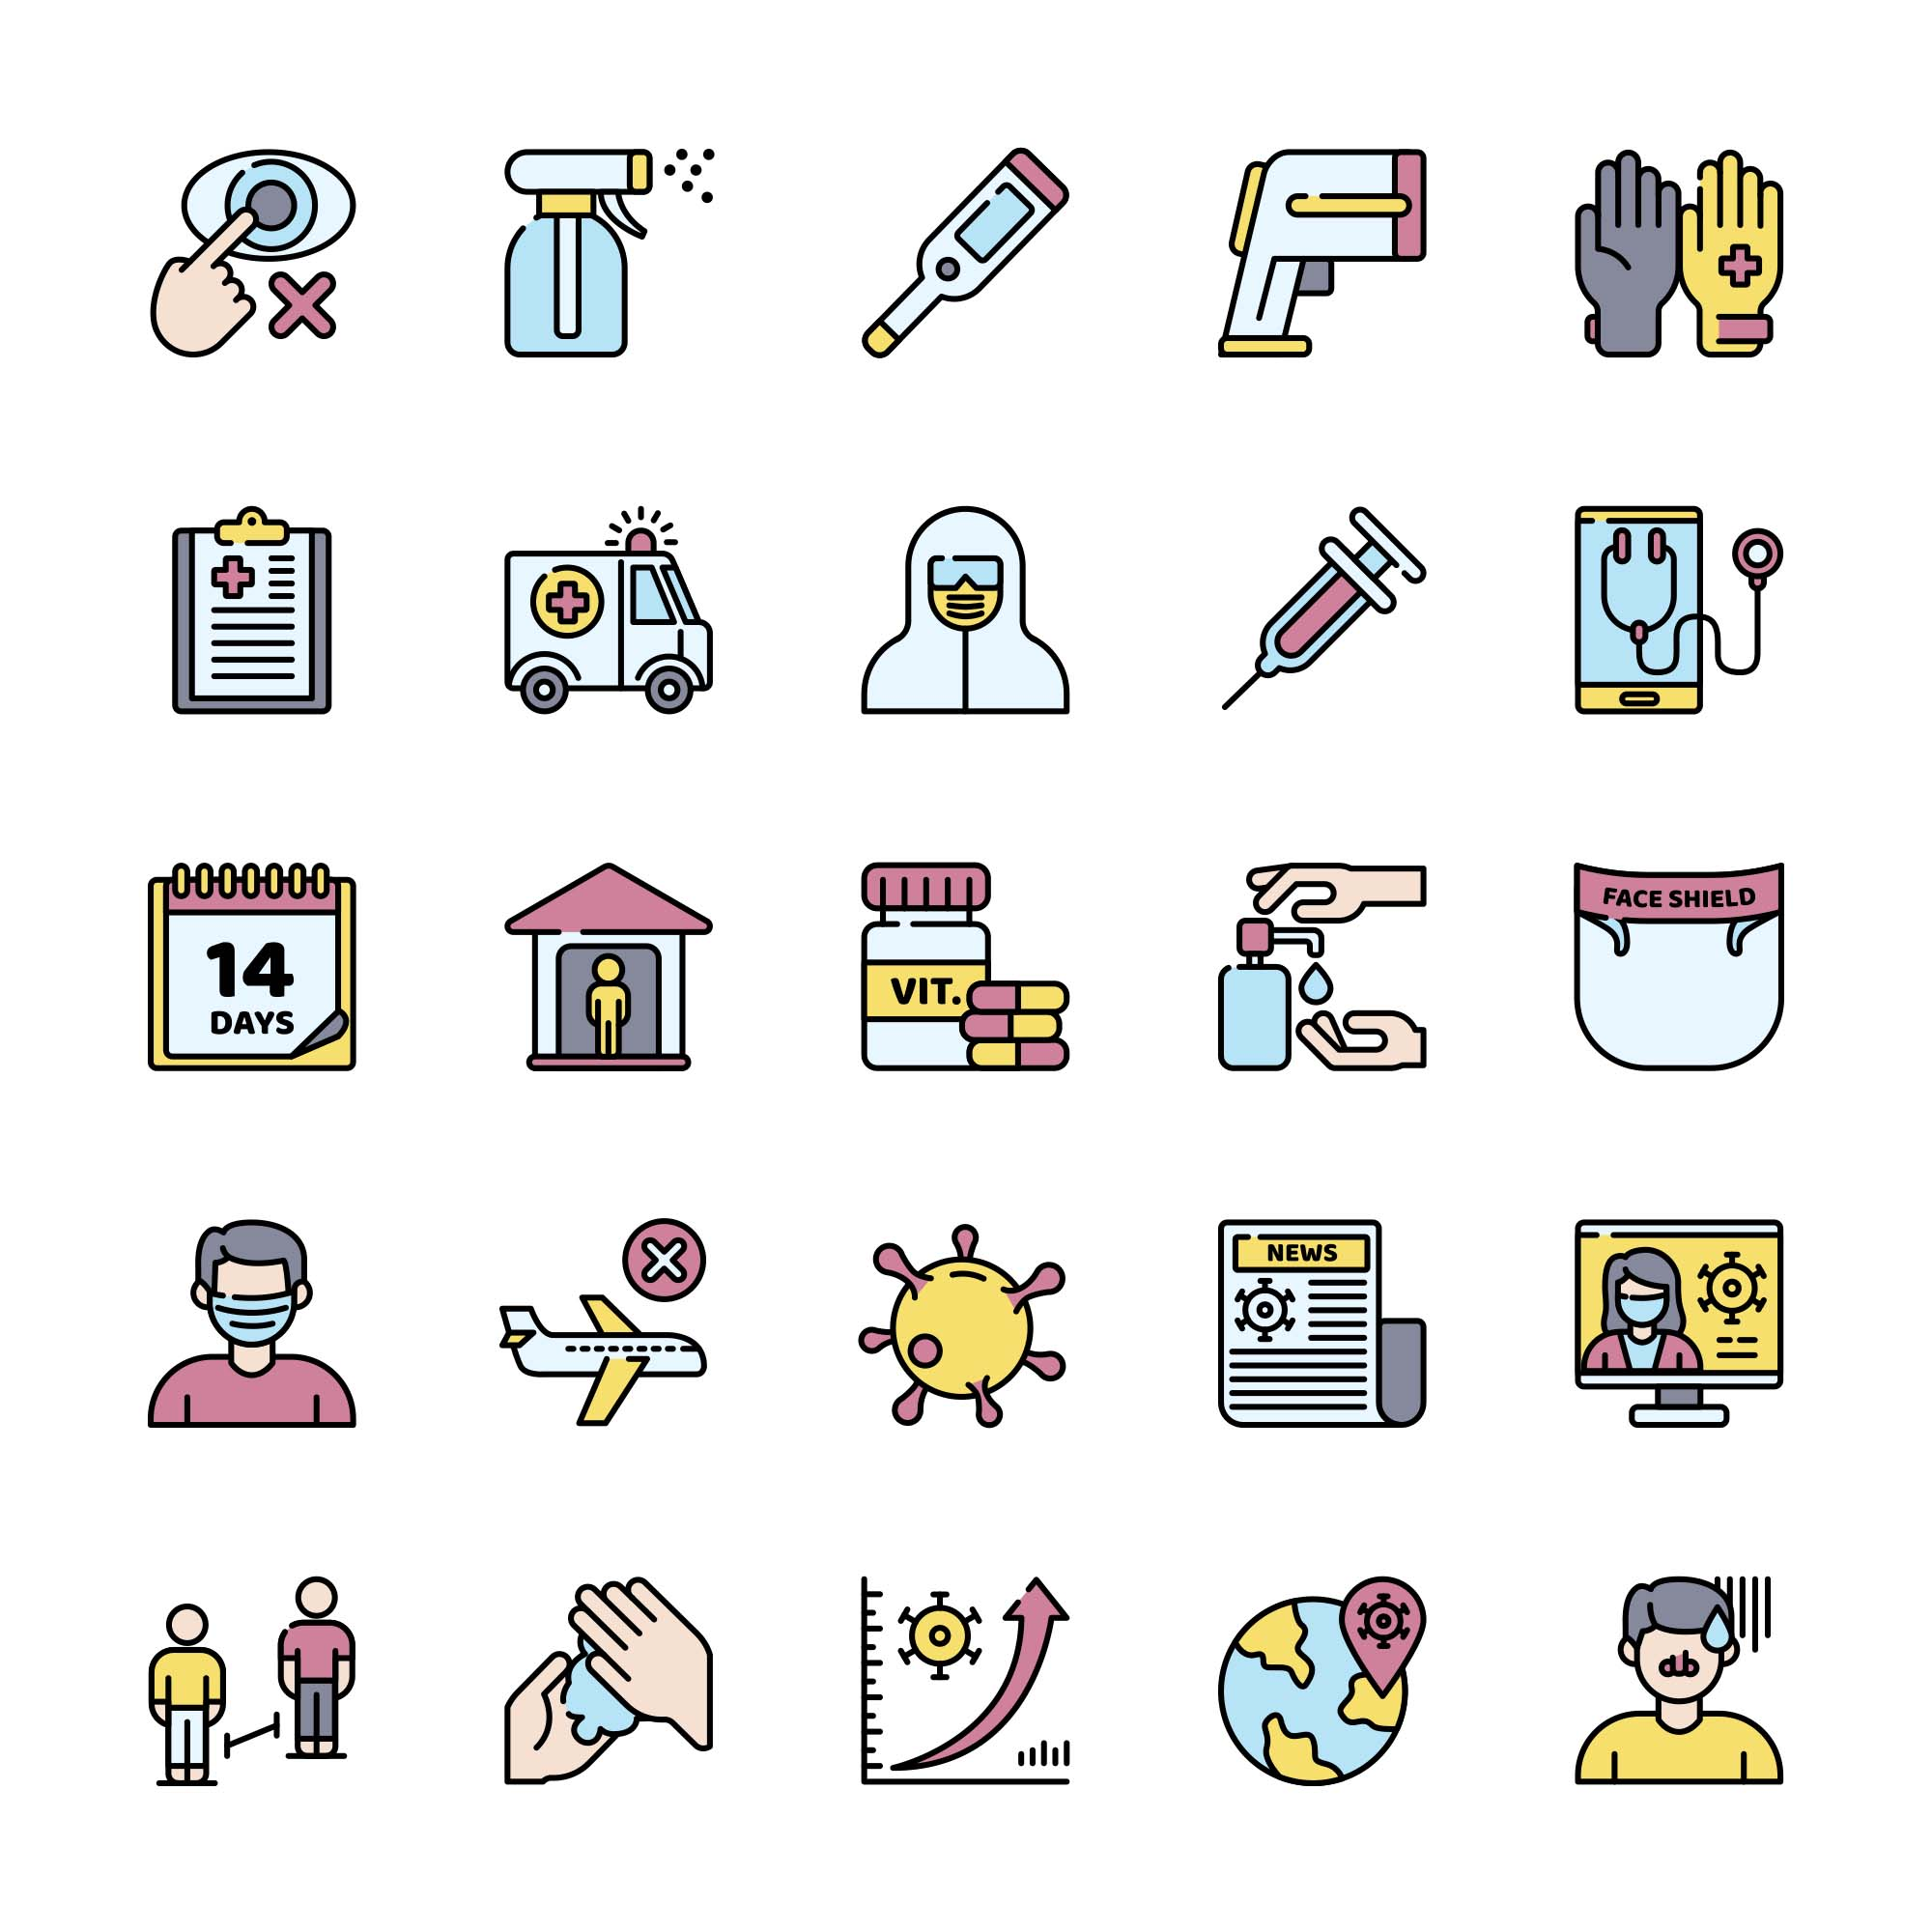 COVID-19 Protection Measures Vector Icons